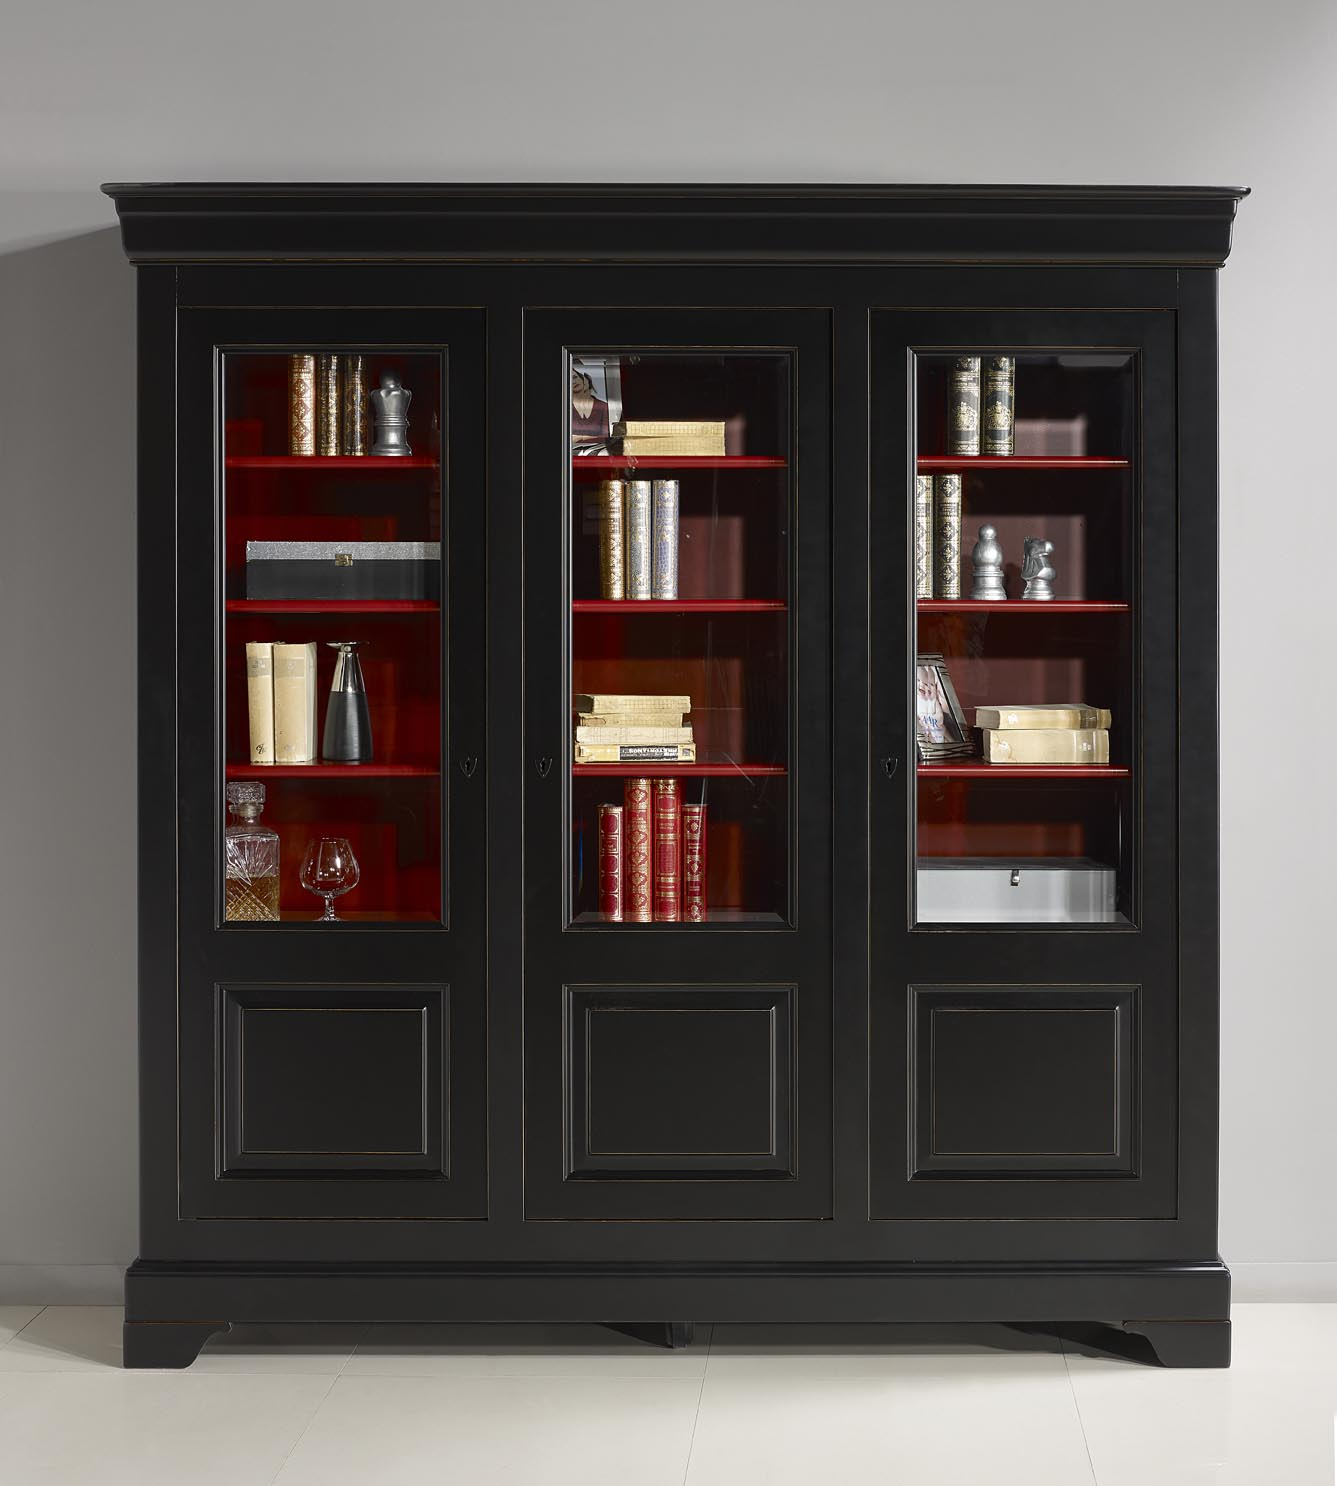 biblioth que 3 portes flore en merisier massif de style louis philippe patin noir et rouge. Black Bedroom Furniture Sets. Home Design Ideas